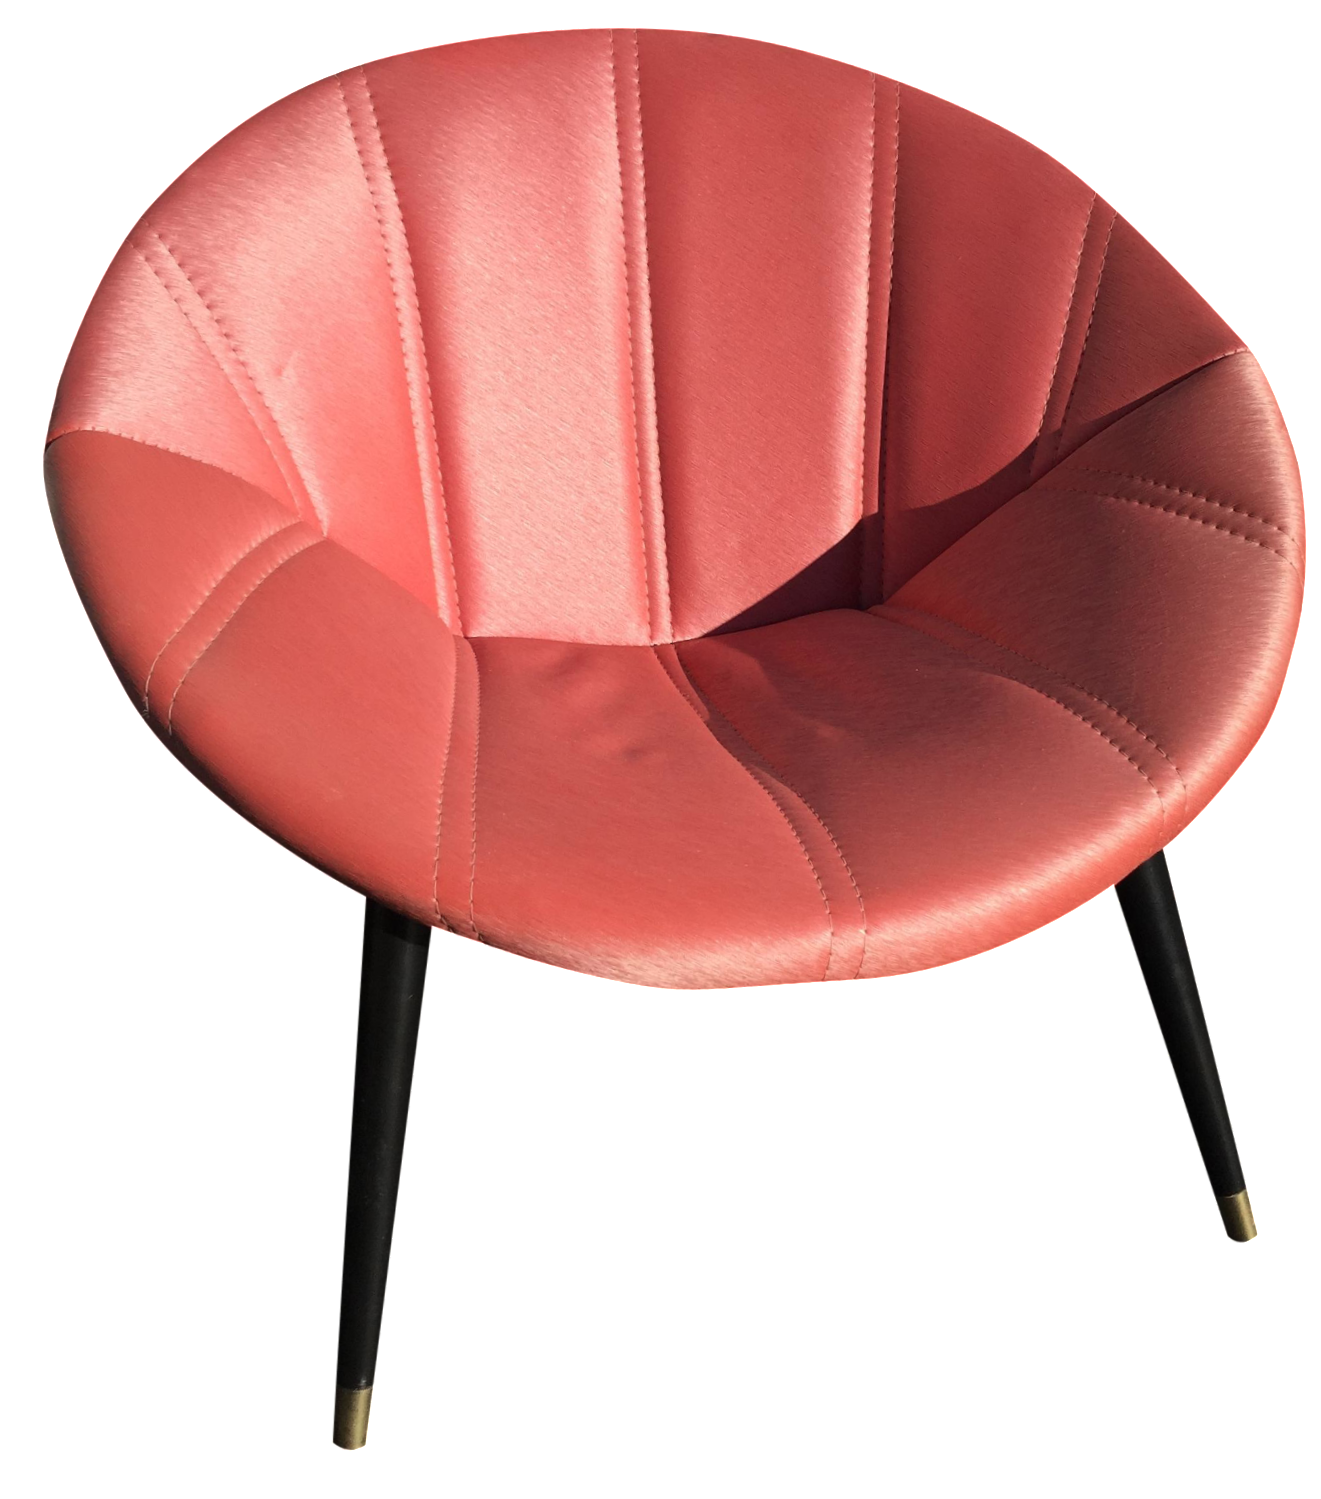 Genial Melbourne Mid Century Saucer Chair In Salmon